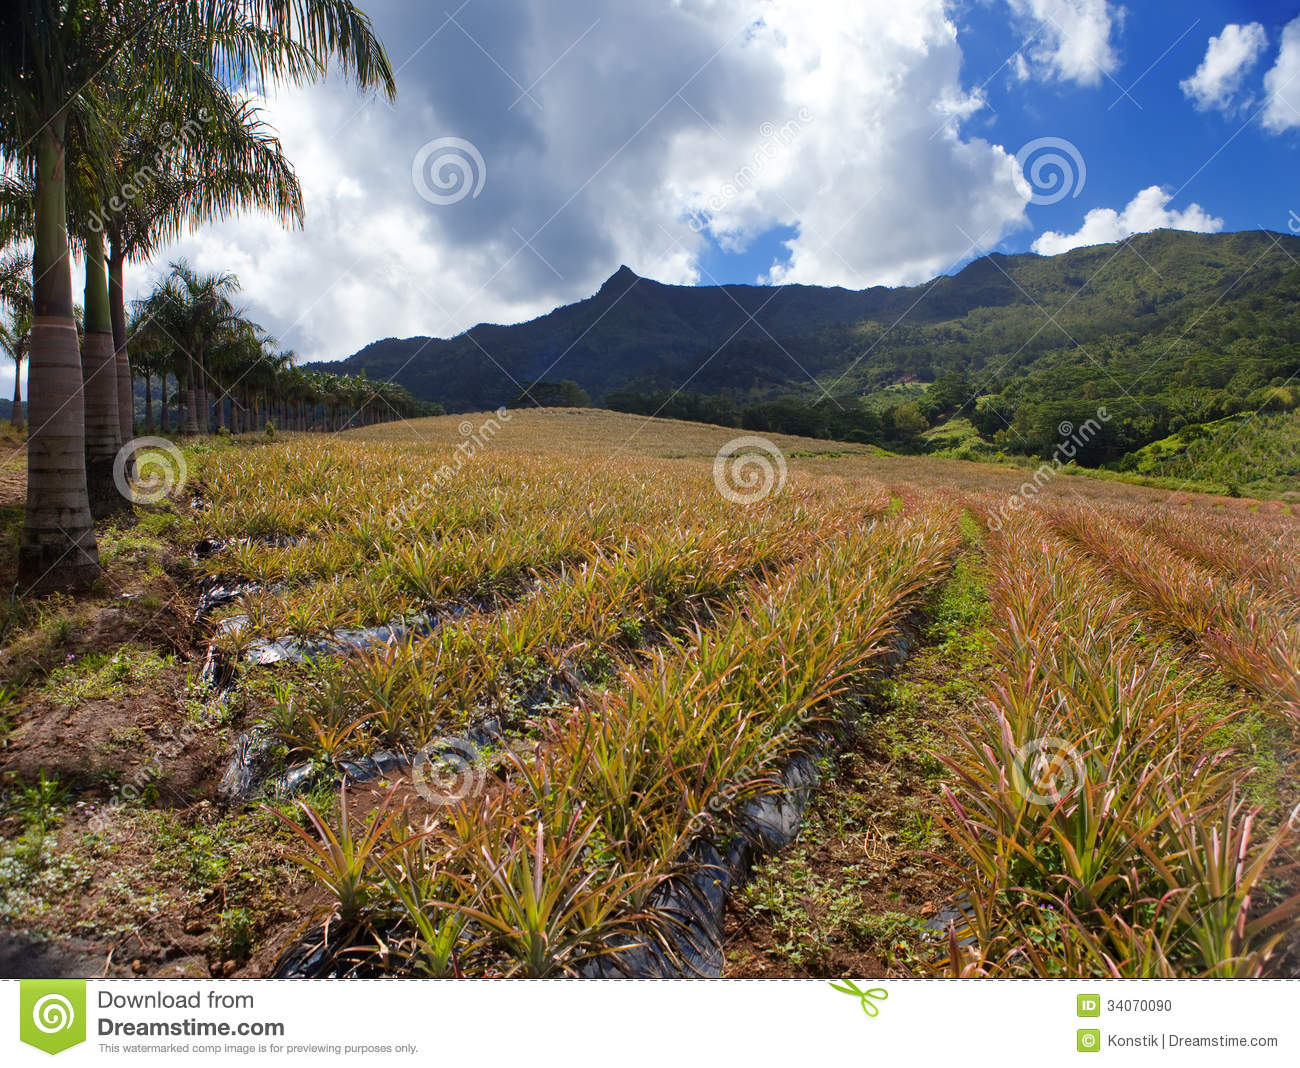 Mauritius Plantations Of Pineapples In A Hilly Terrain